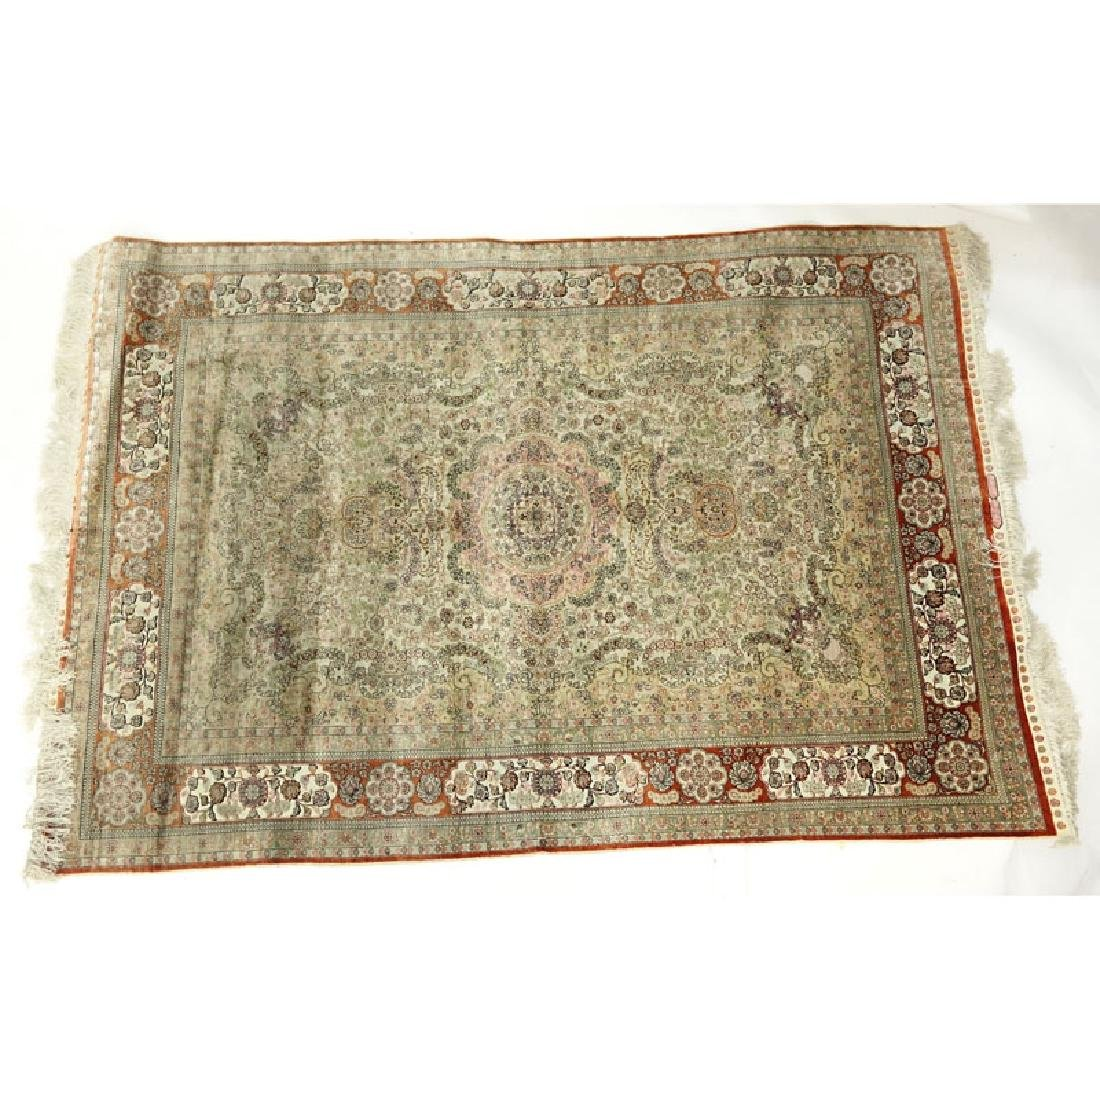 Semi Antique Persian Style Silk Rug. Signed. Wear